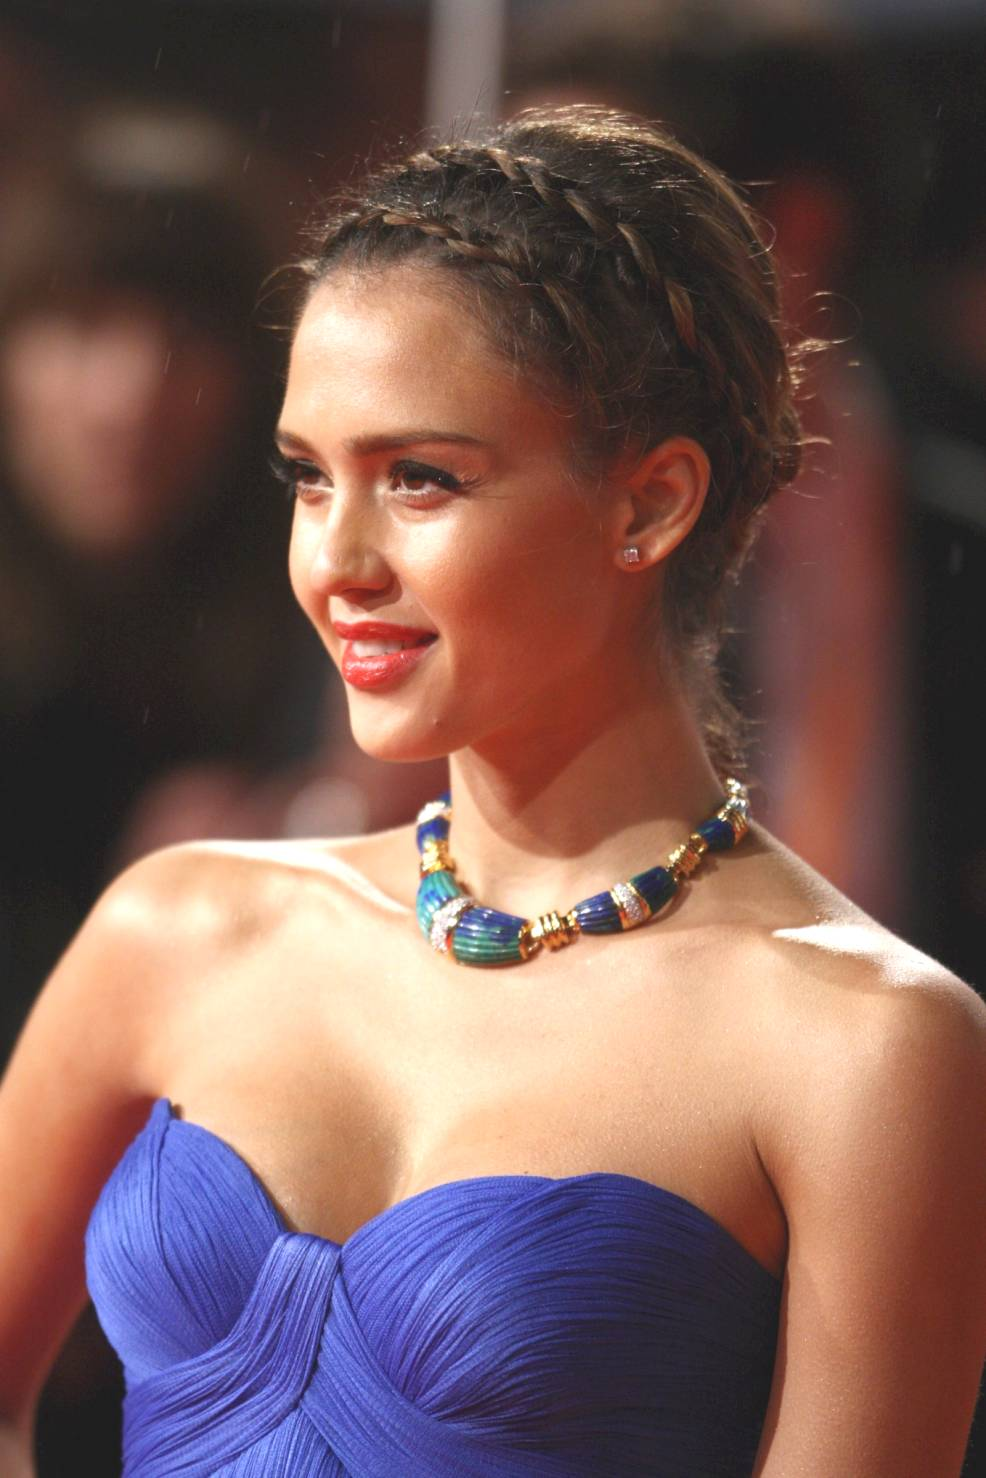 hairstyles popular 2012 jessica alba hairstyle of 2011